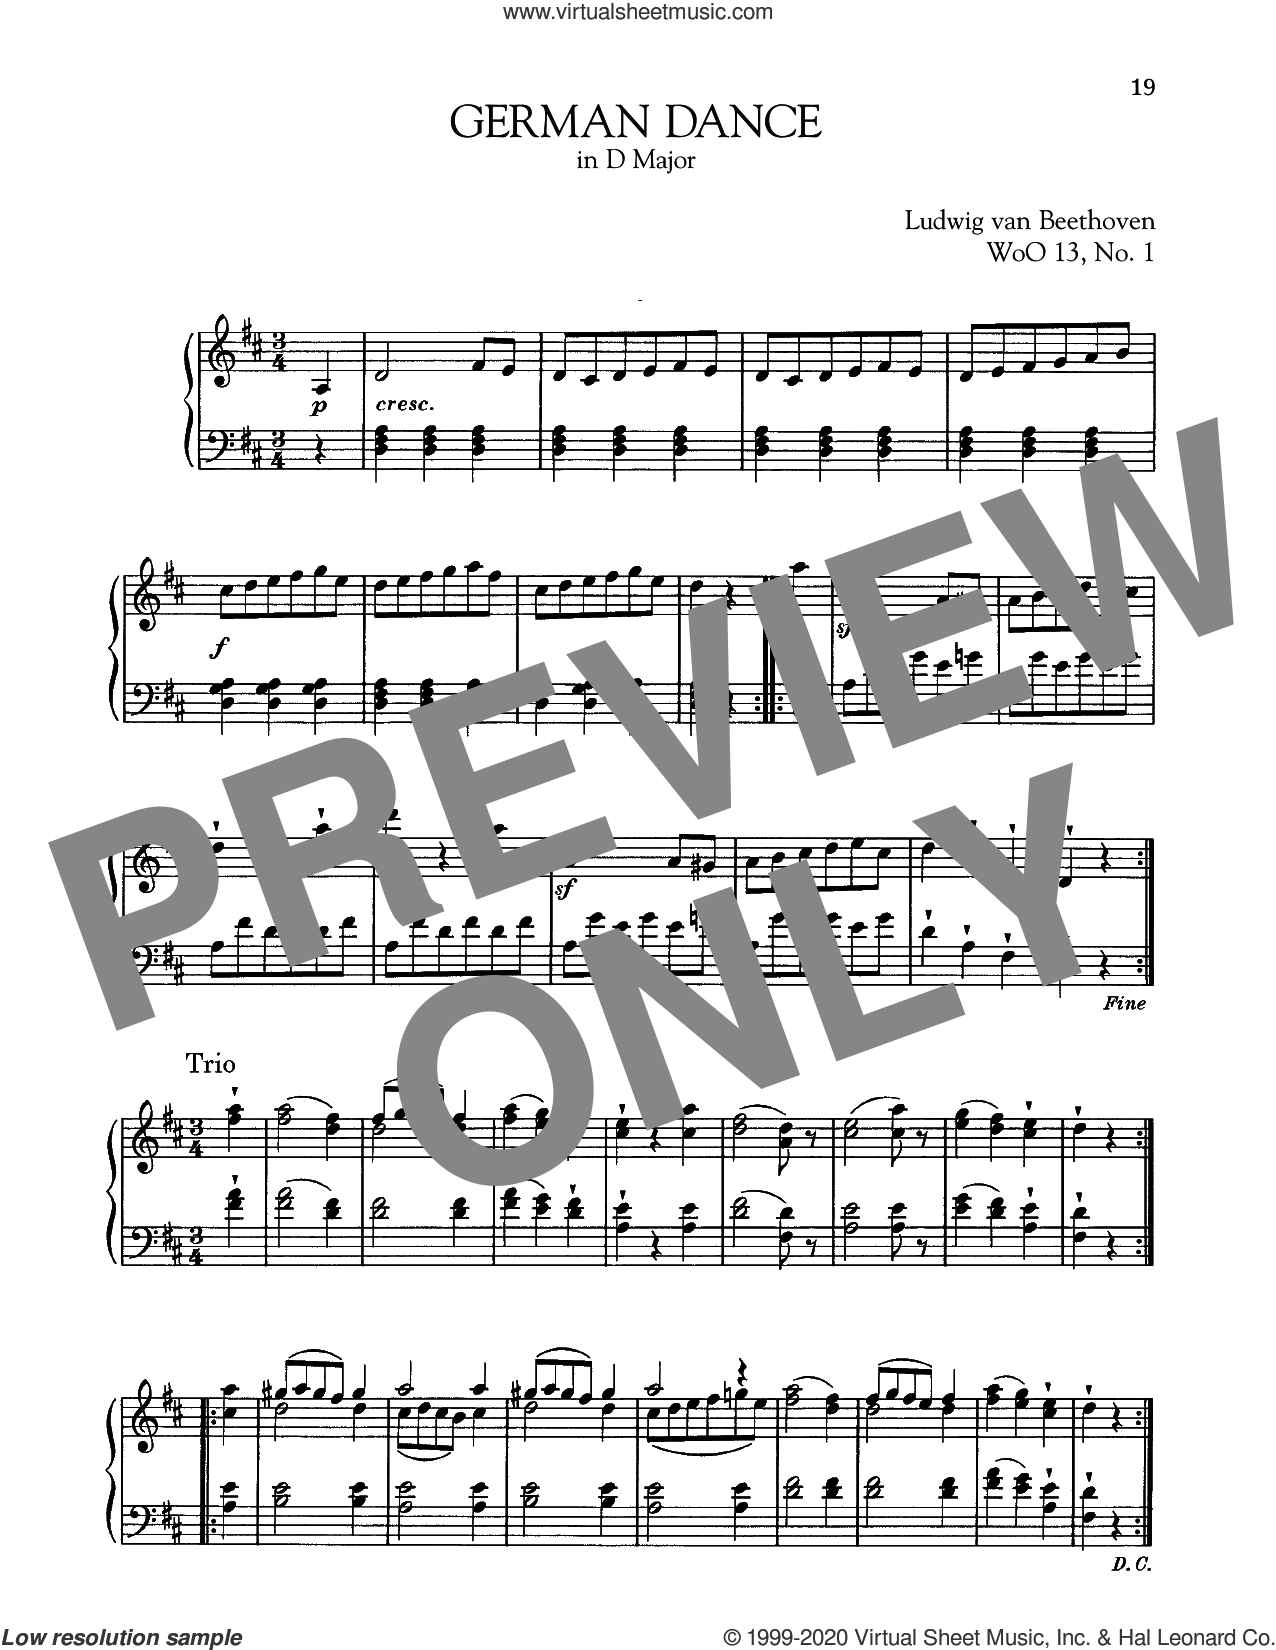 German Dance In D Major, WoO 13, No. 1 sheet music for piano solo by Ludwig van Beethoven, classical score, intermediate skill level